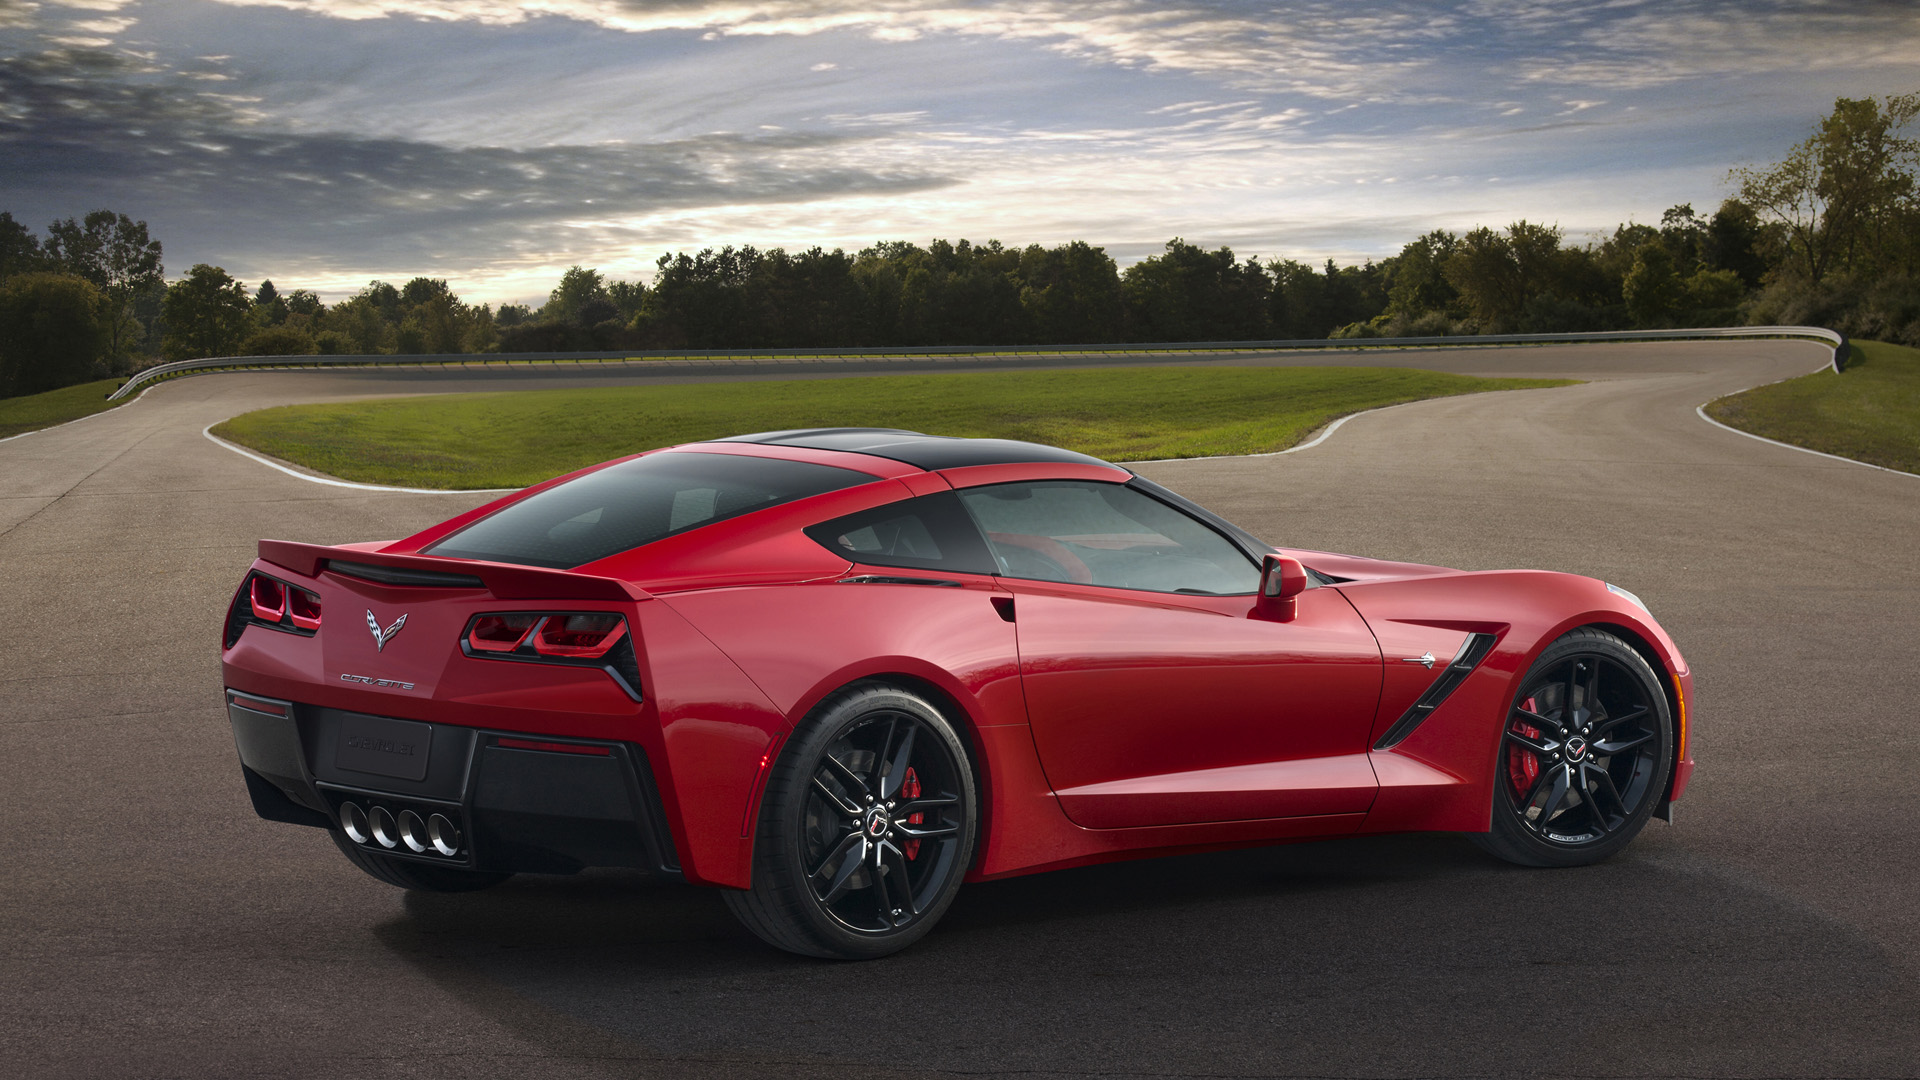 corvette c7 stingray chevrolet corvette c7 stingray wallpaper 1920x1080